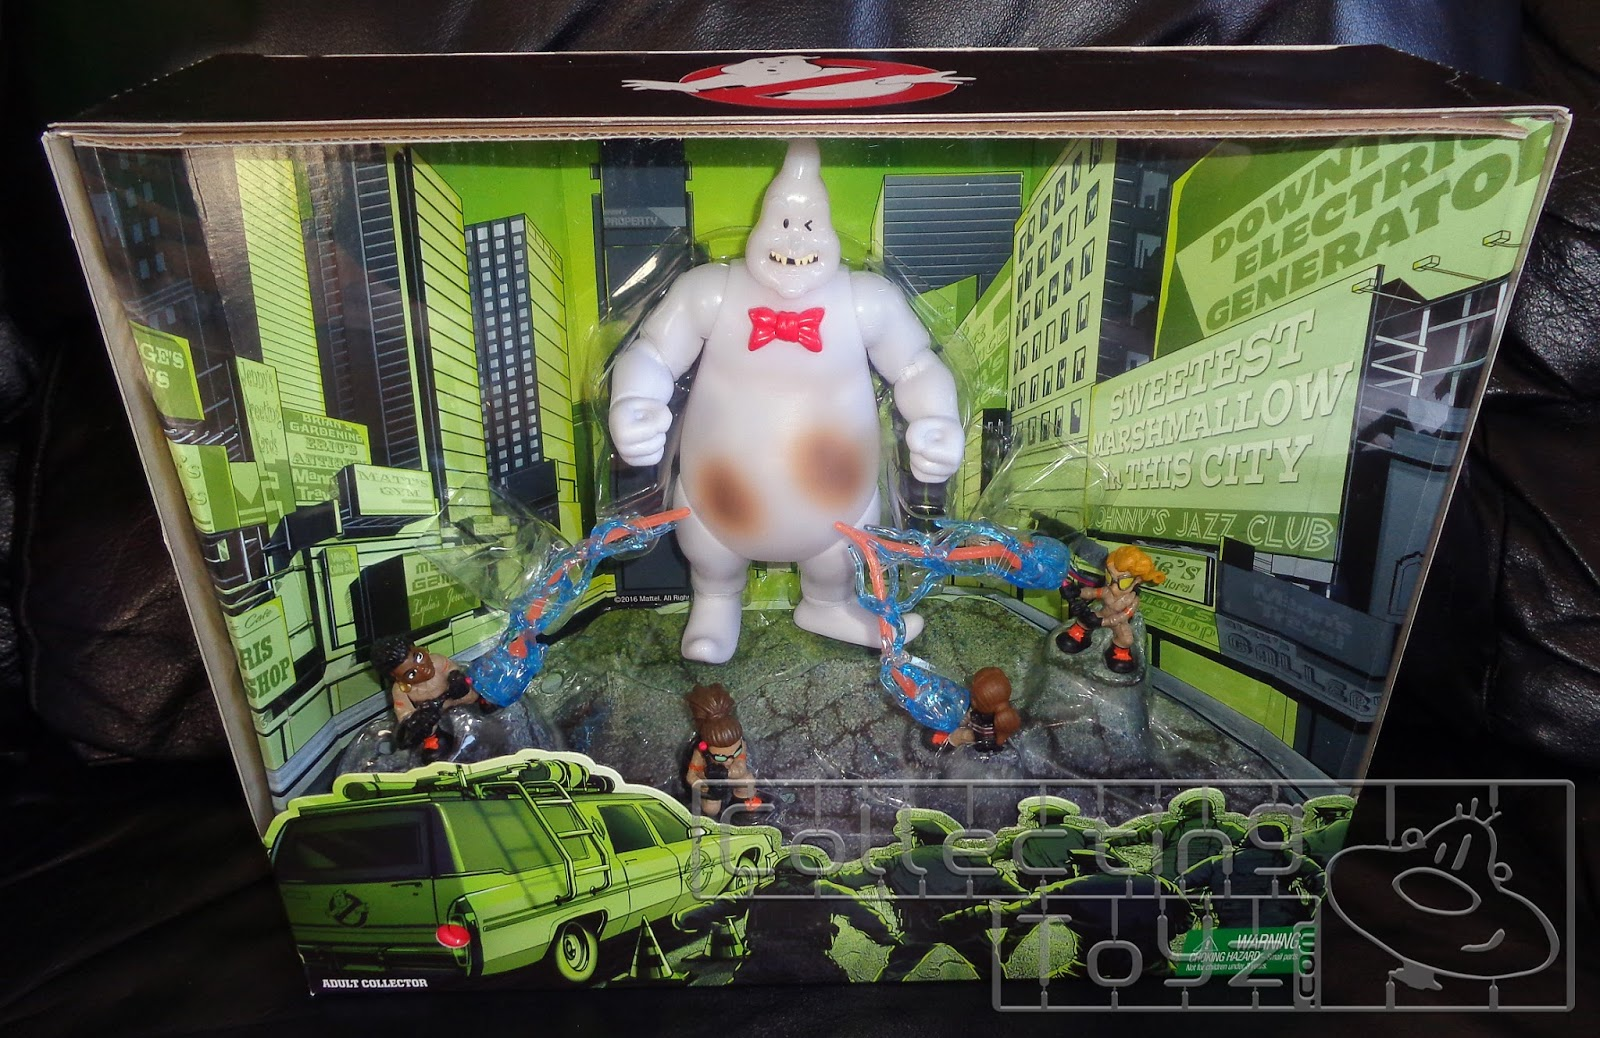 Collecting Toyz Sdcc 2016 Exclusive Ghostbusters Box Set Tony Hawk Circuit Boards By Hexbug Power Axle Innovation First This Is The Once You Take It Out Of Outer If Look Closely Can Push Taillight Ecto 1 To Watch Zap Rowan